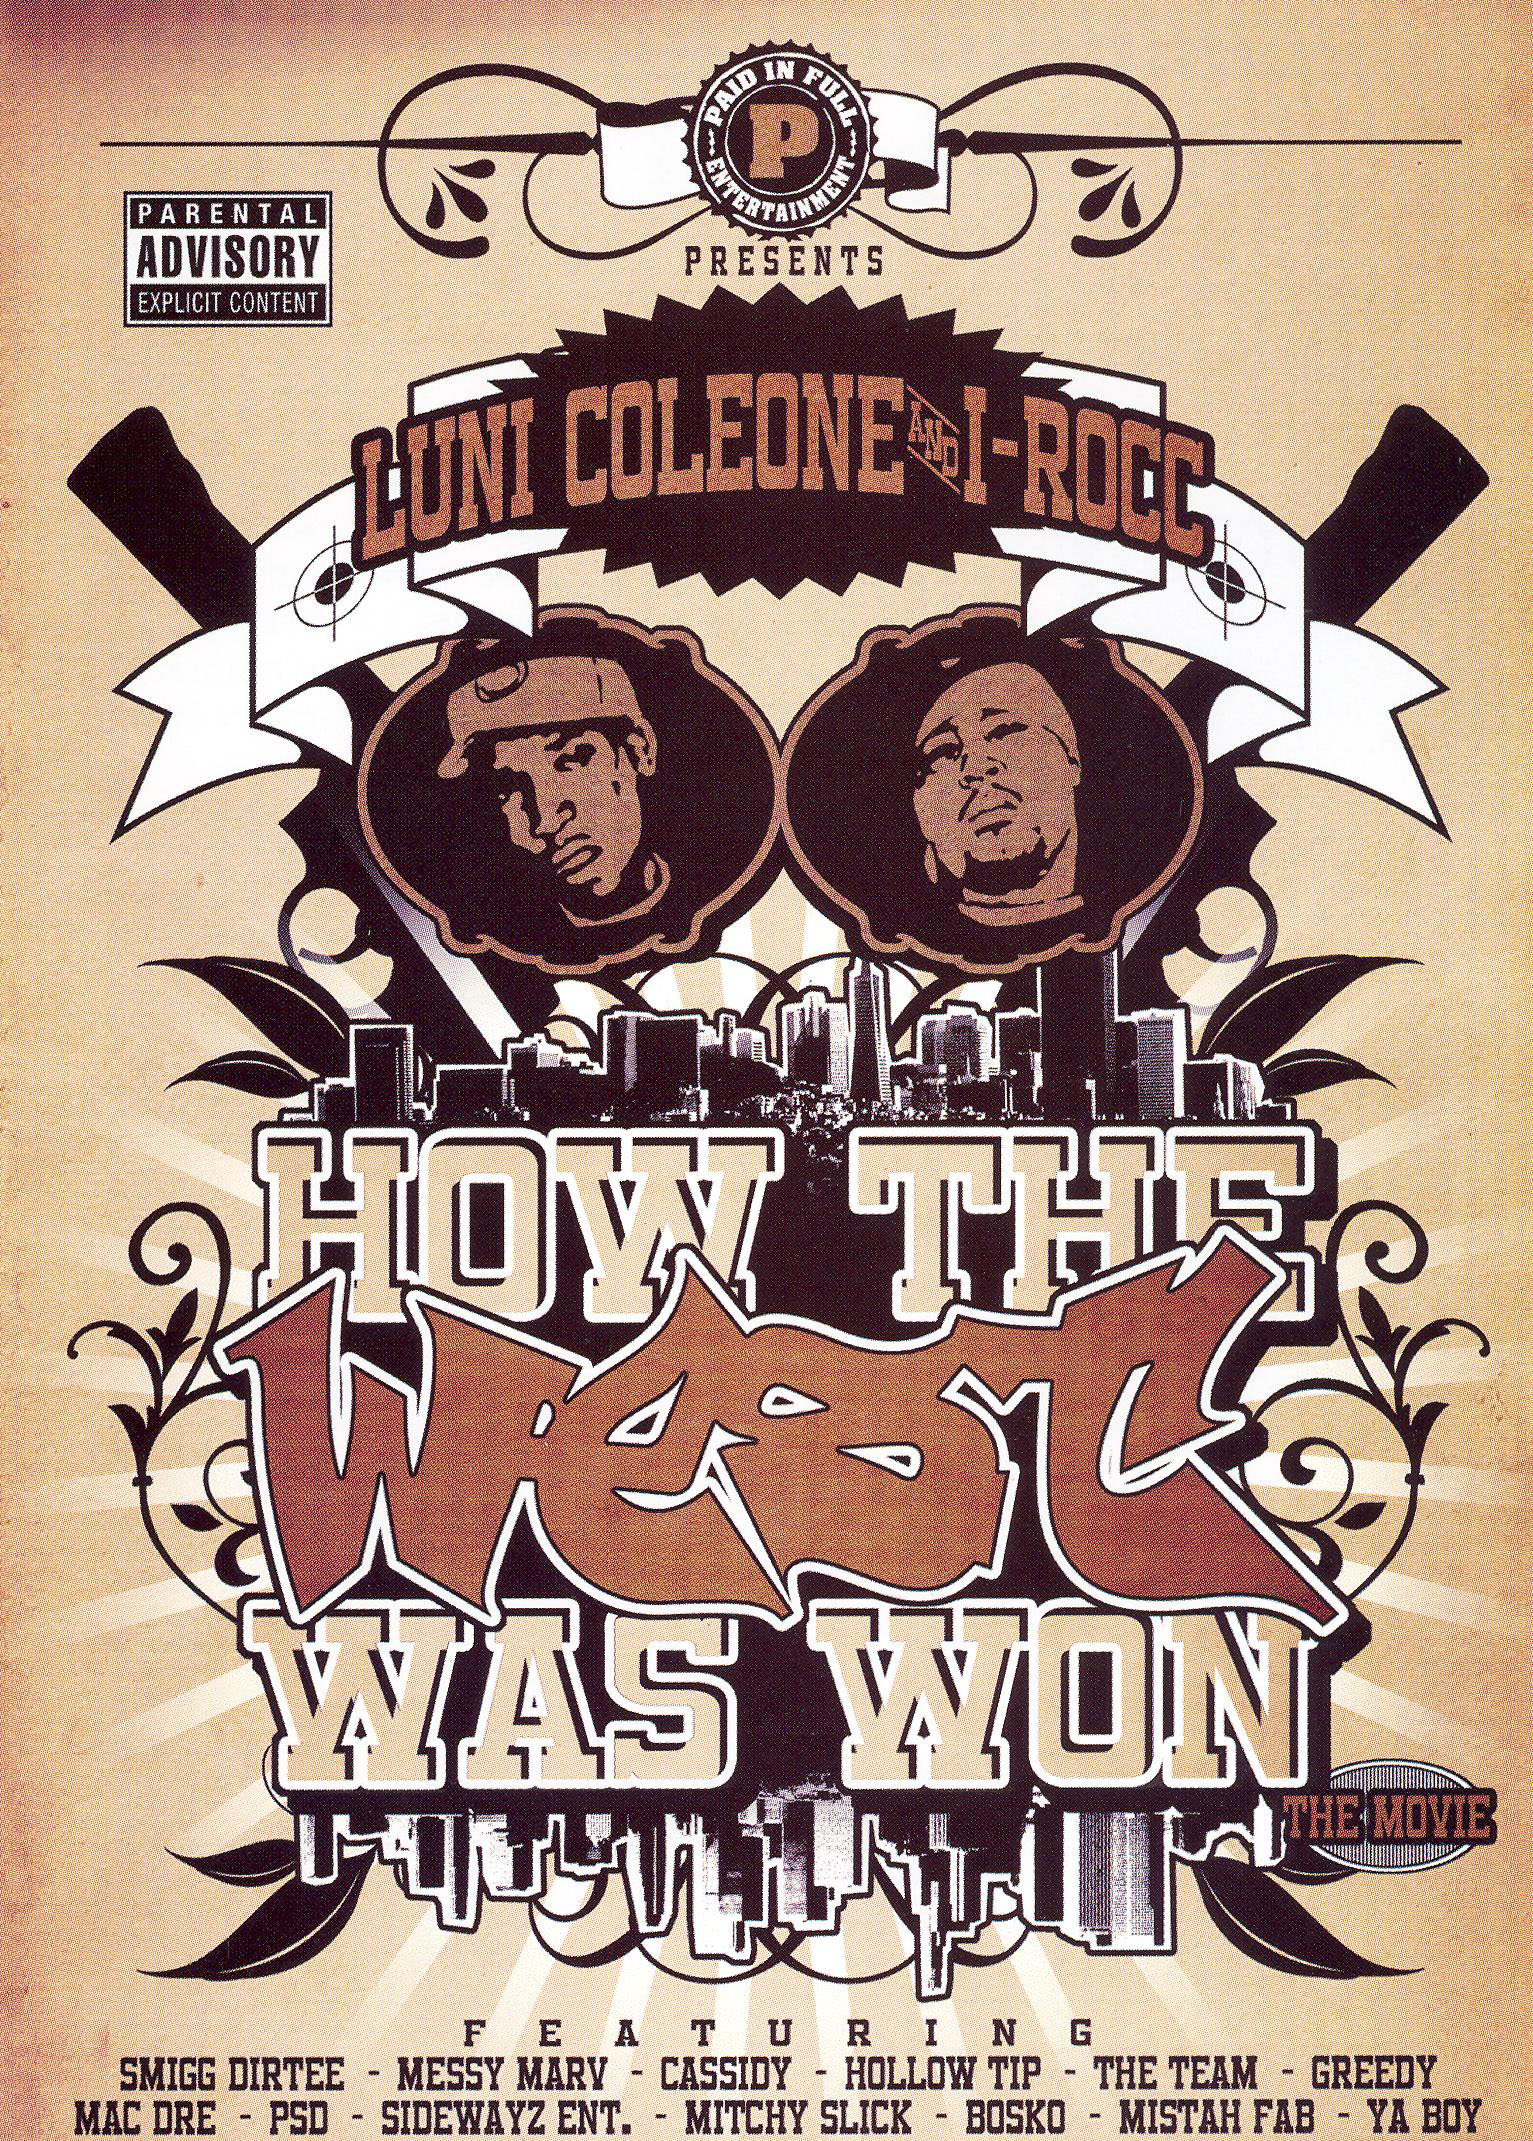 Luni Coleone & I-Roc: How the West Was Won - The Movie